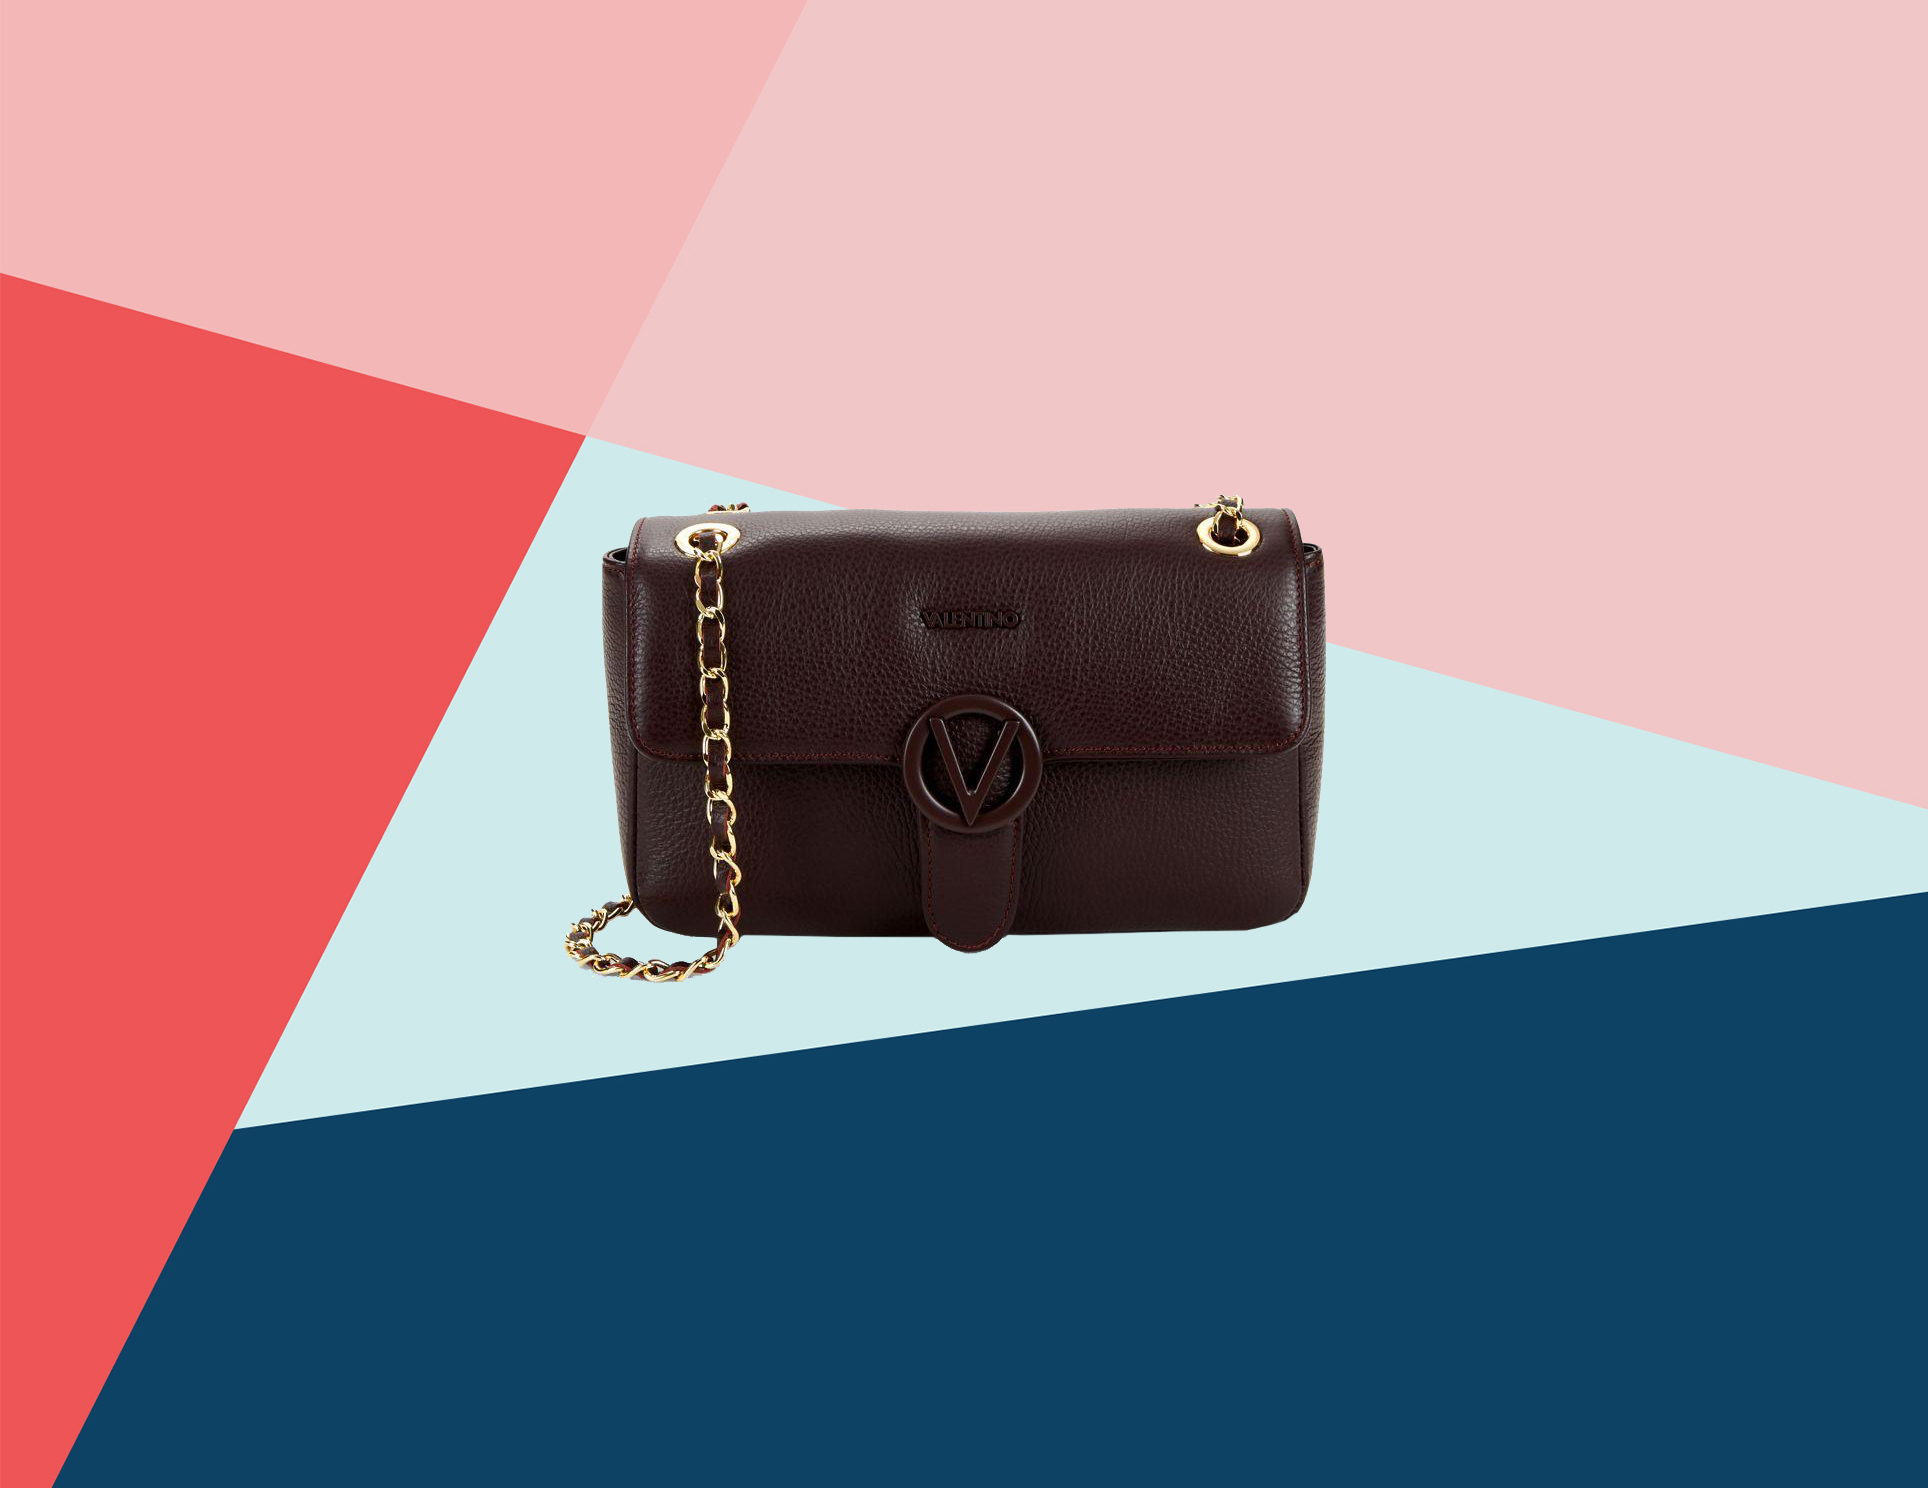 6cf9487e55 Tons of Designer Bags Are Already on Sale for Presidents  Day  Weekend—Including Valentino for 71% Off